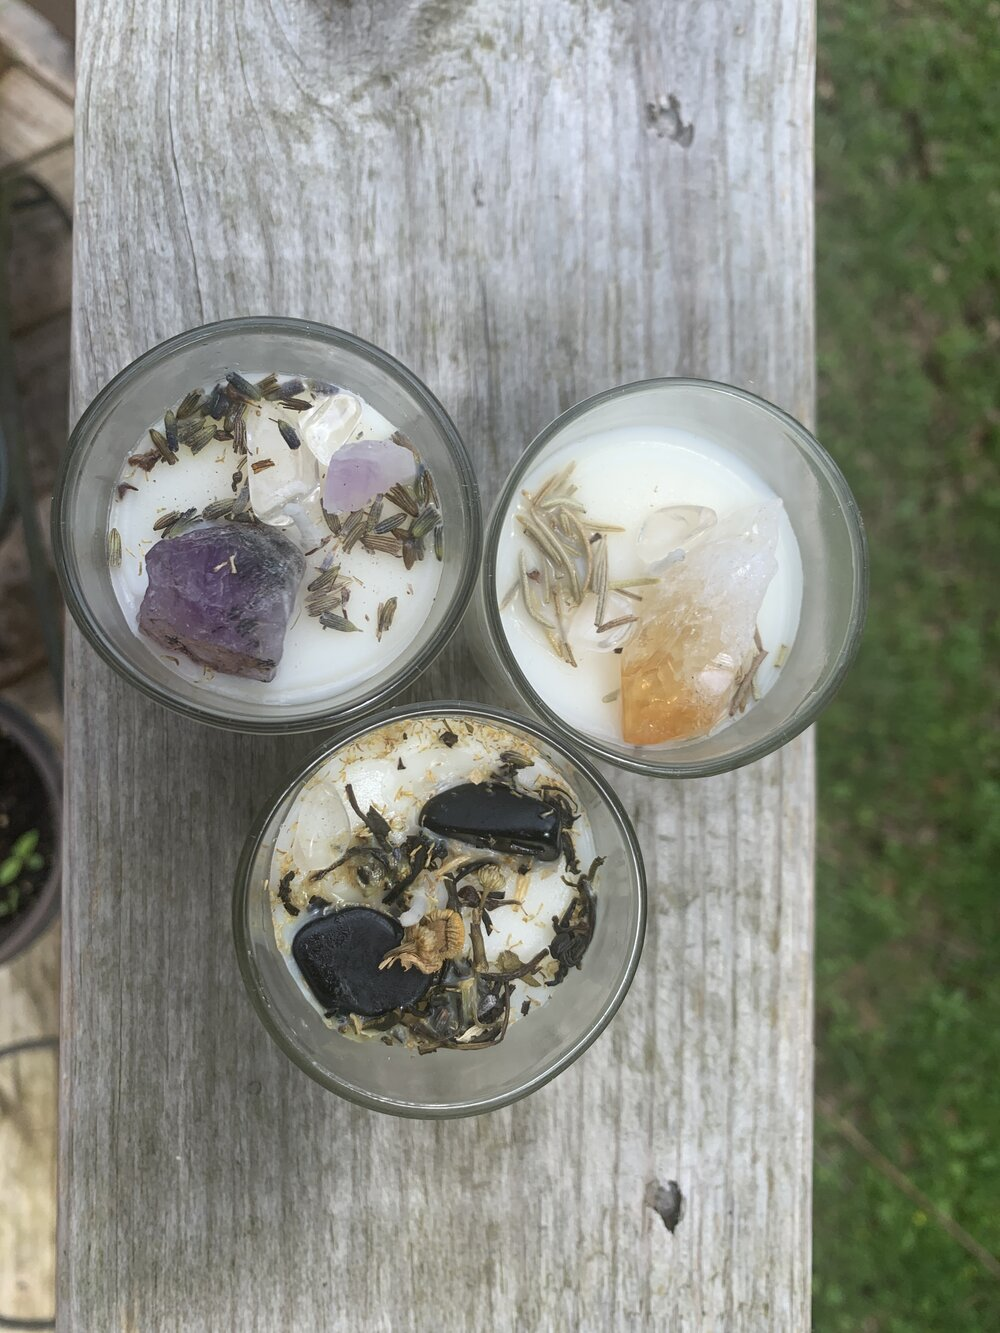 Crystal-infused intention candles